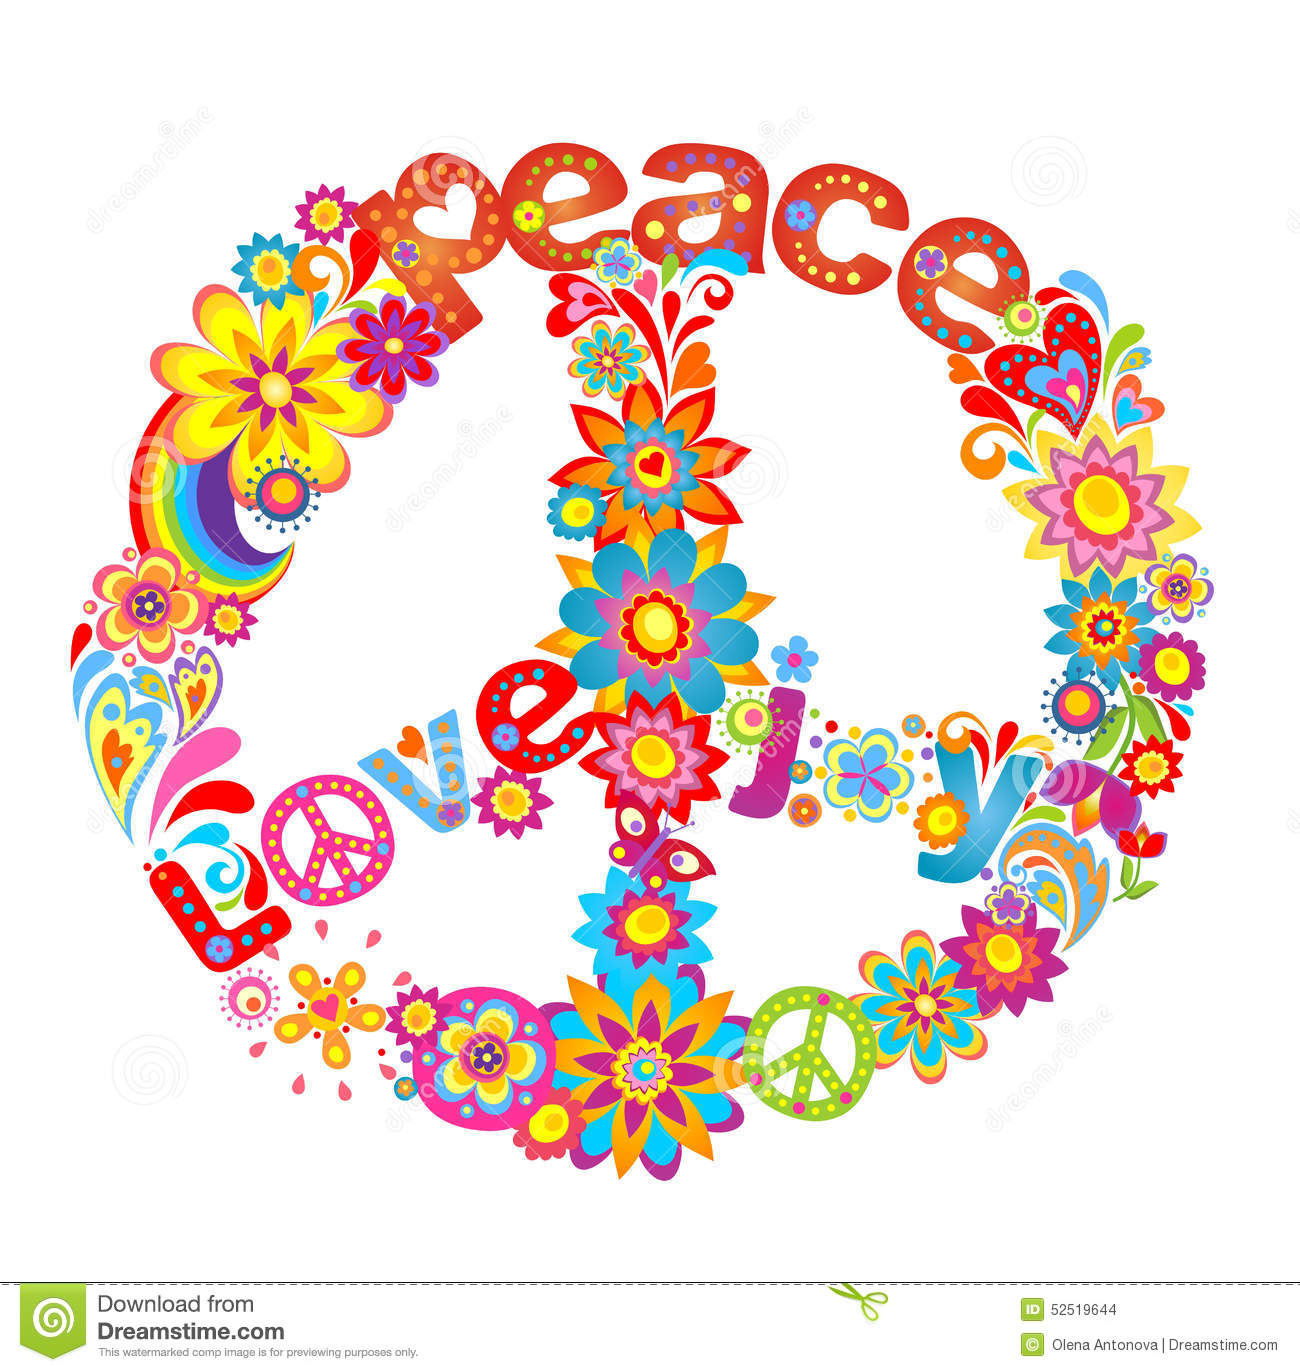 Peace flower symbol stock vector illustration of happiness 52519644 peace flower symbol biocorpaavc Image collections